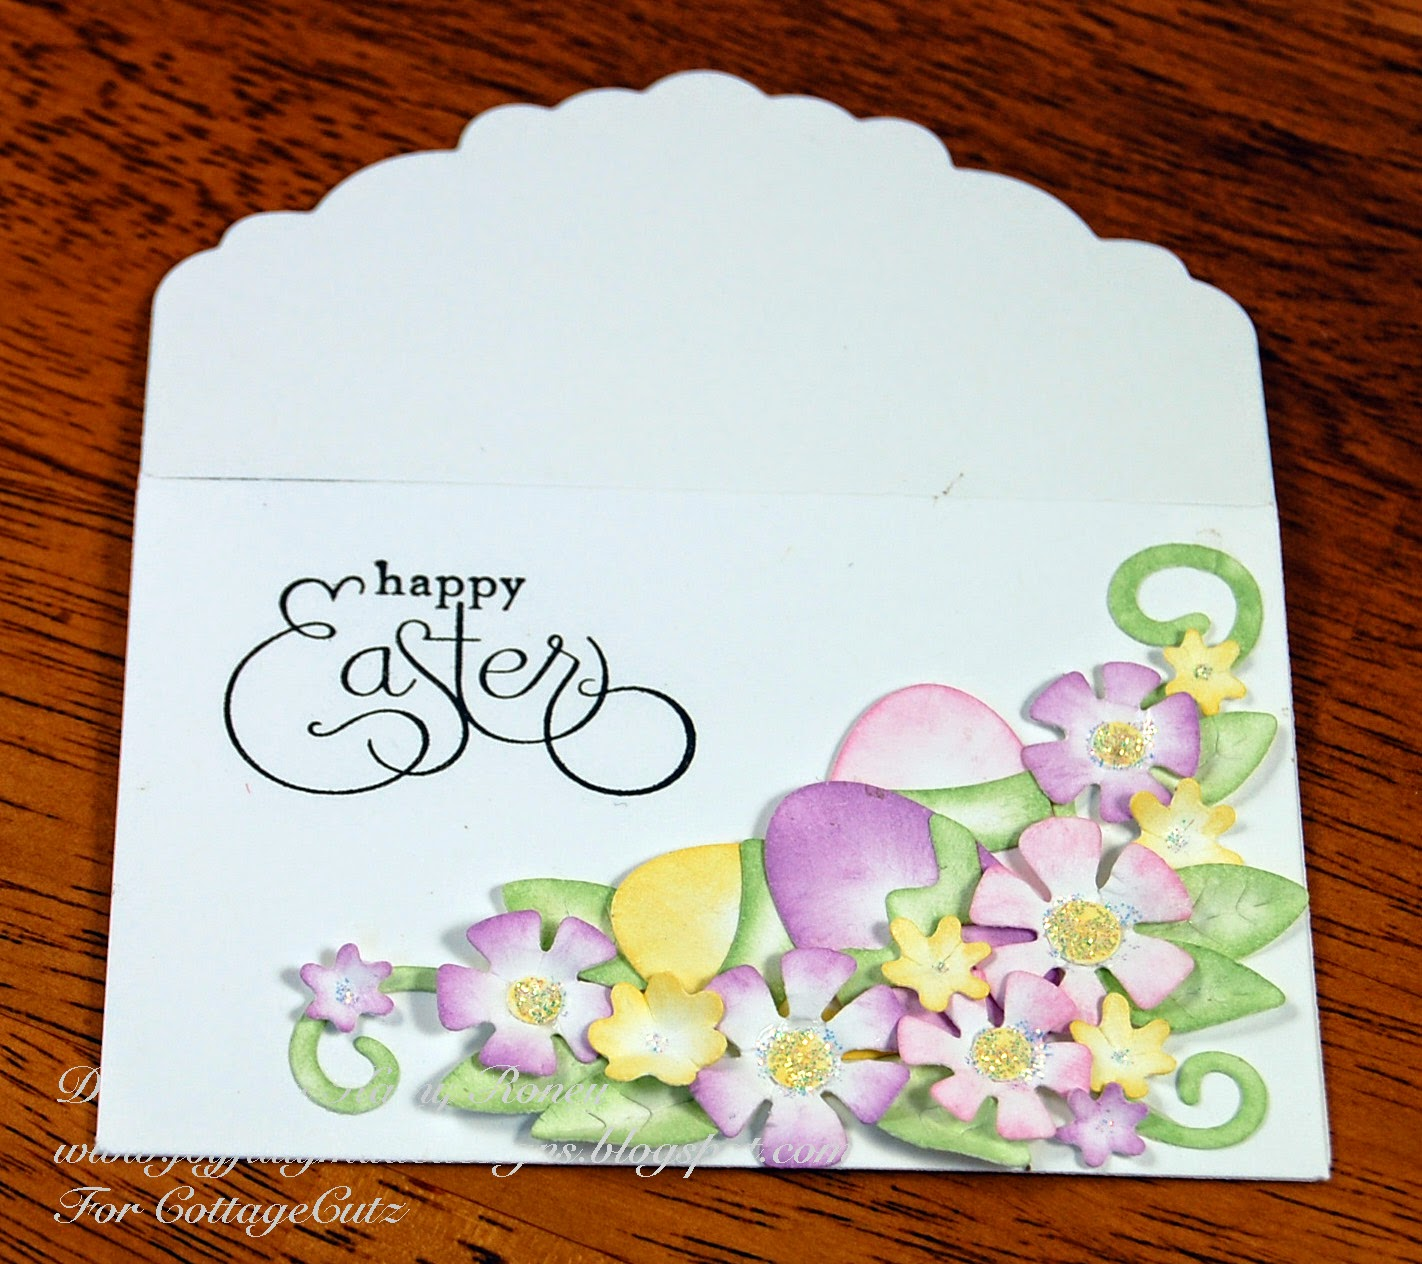 Cottageblog easter gift card holder i used thatched straw aloe vera spring pansy versamagic and pink cheeks powderpuffs quick quotes inks negle Gallery